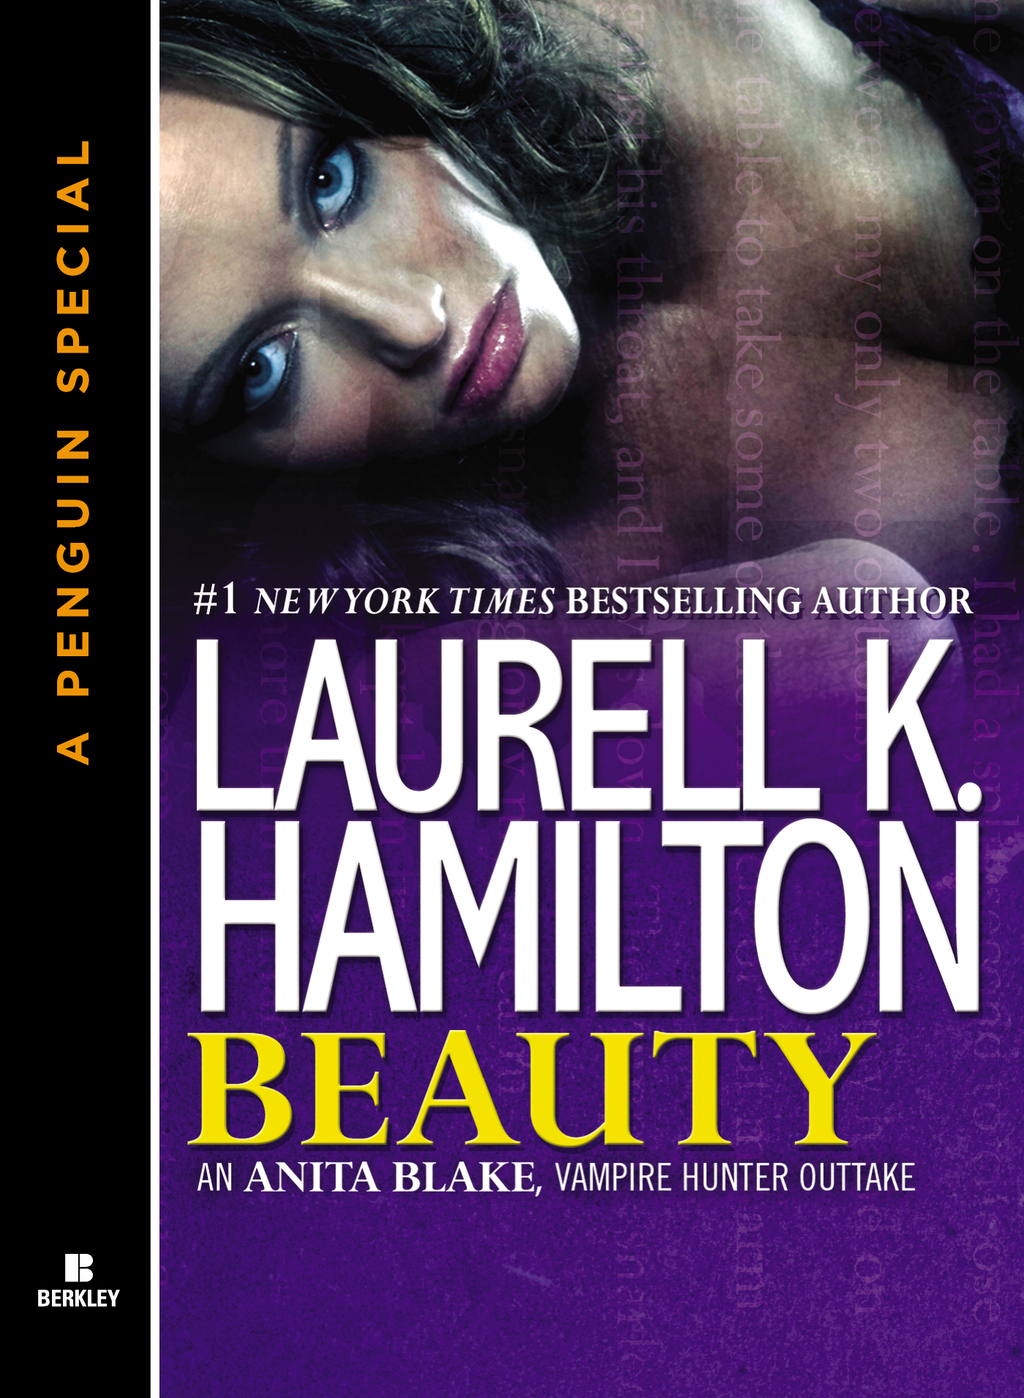 Beauty By: Laurell K. Hamilton